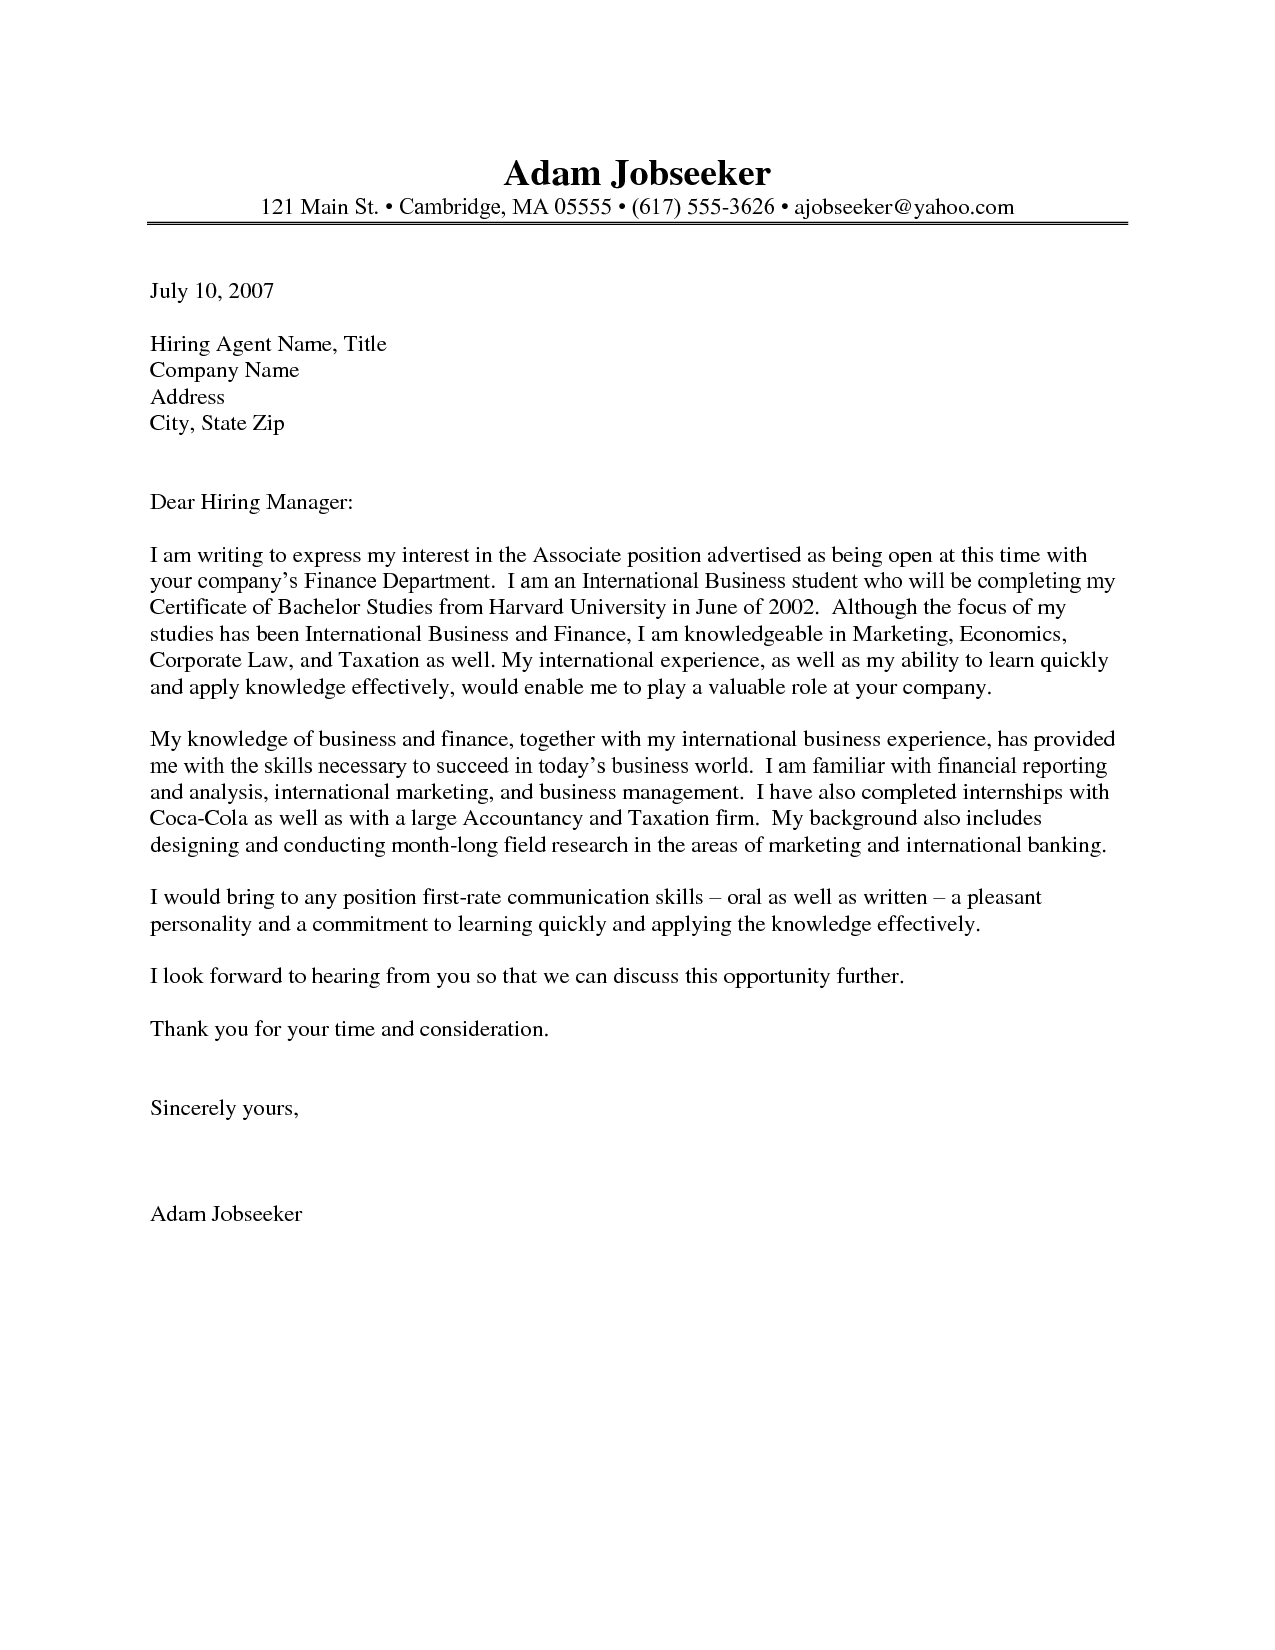 writing cover letter for internship cover letter for internship resume cover letter internship 25838